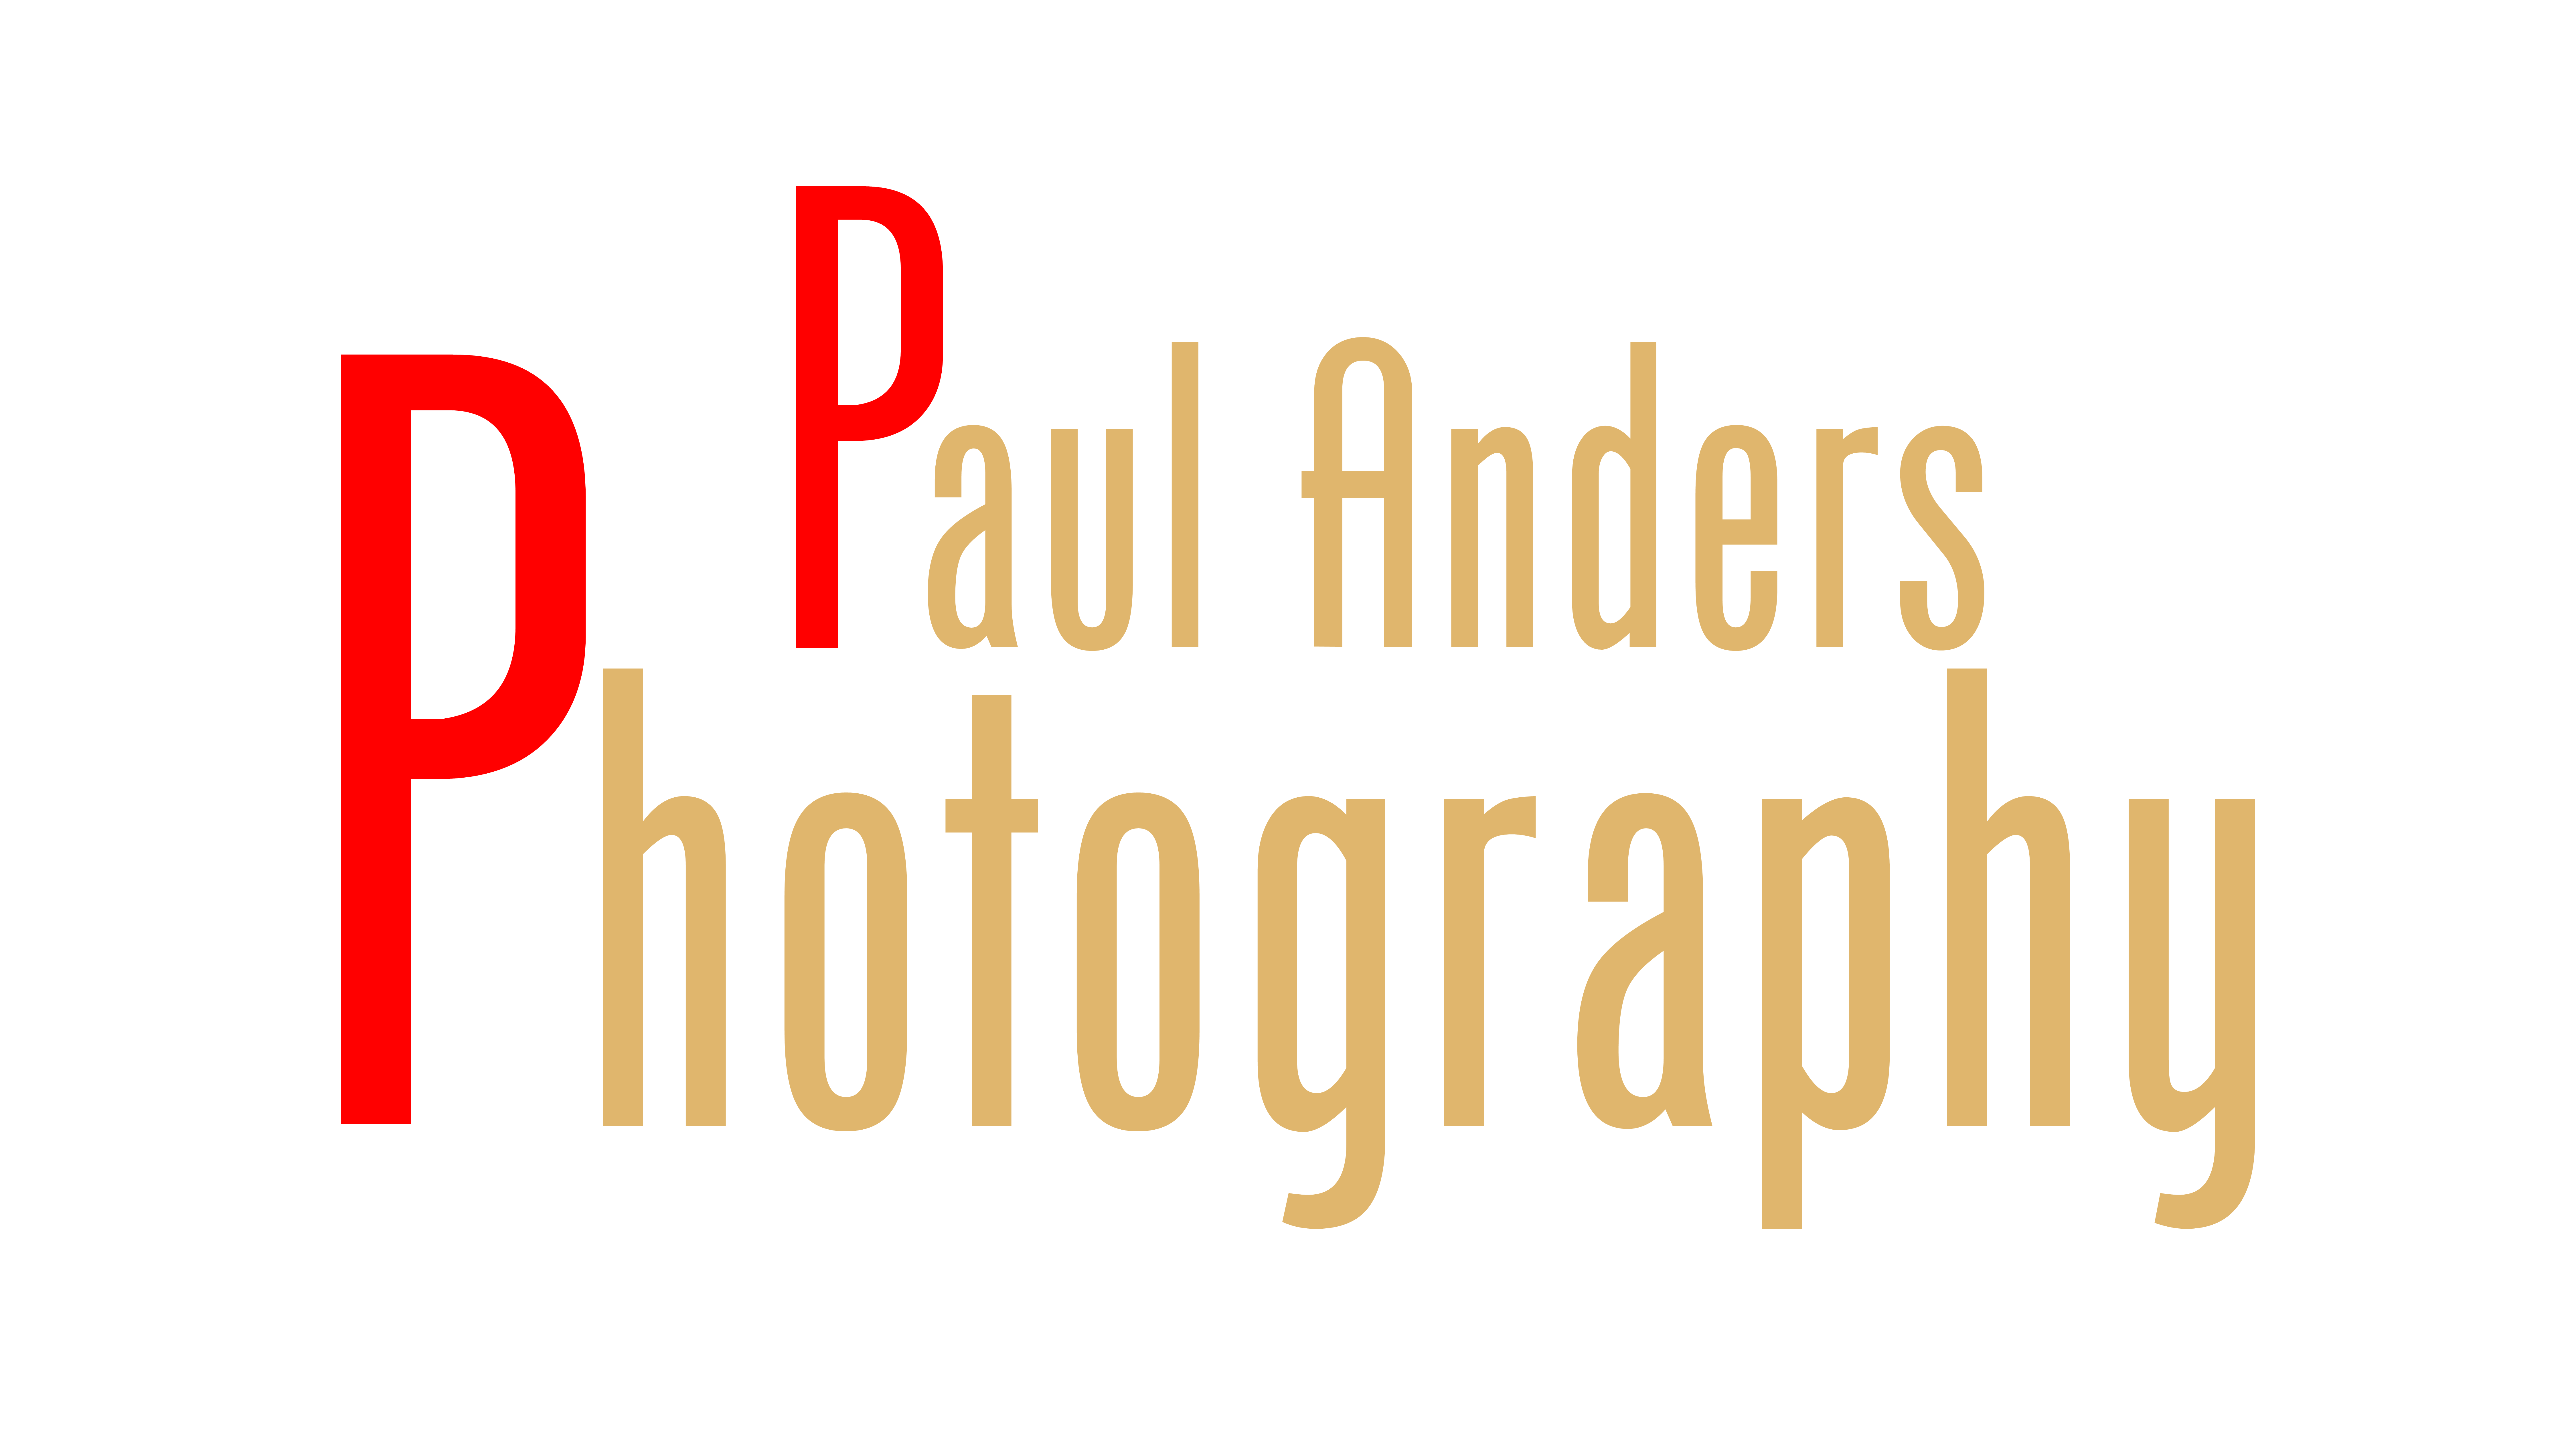 Paul Anders Photography